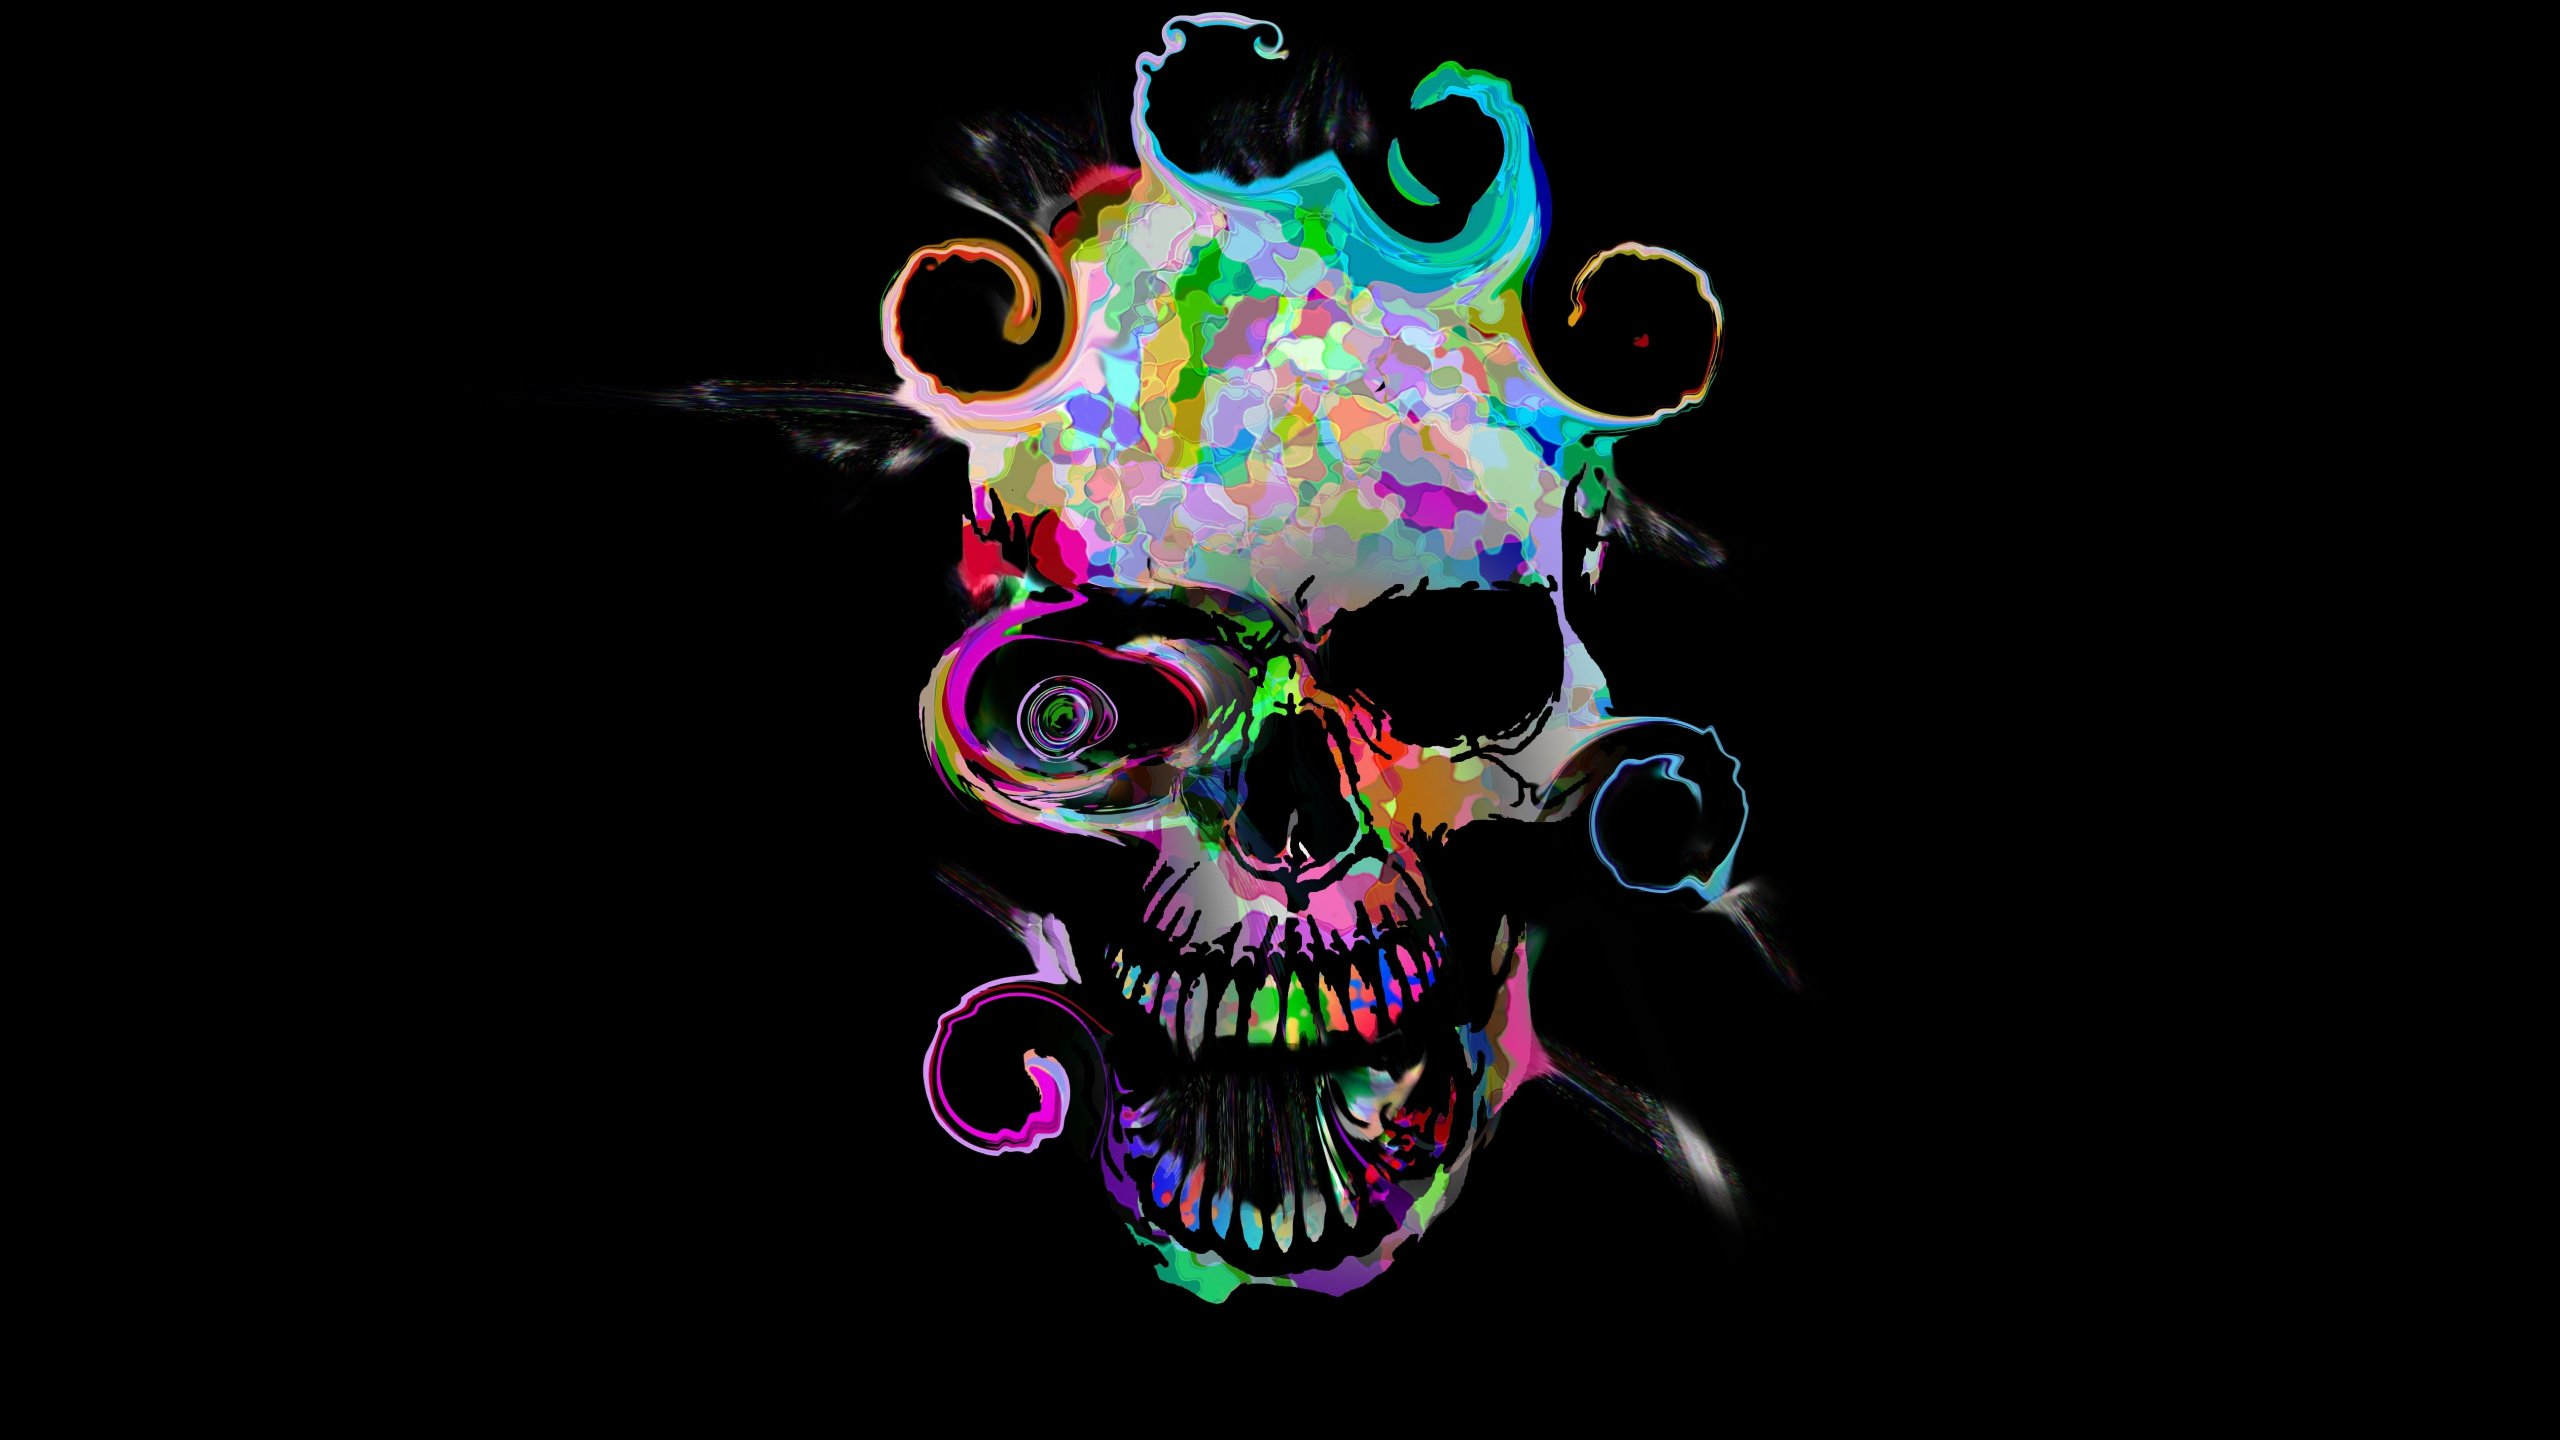 Skull Wallpaper Hd For Mobile 6